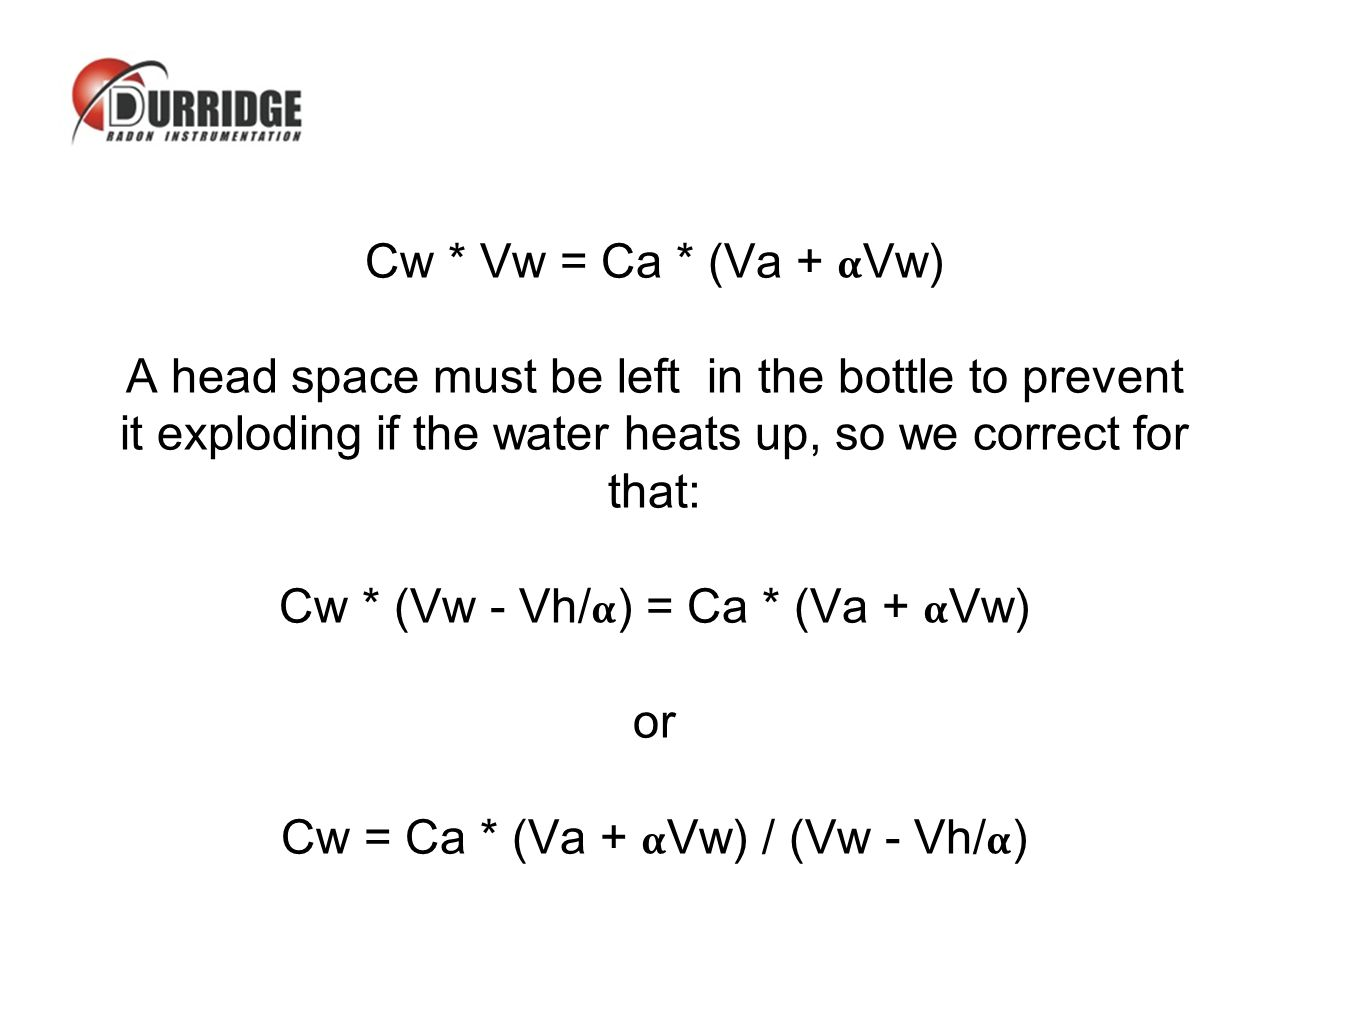 Cw * Vw = Ca * (Va + Vw) A head space must be left in the bottle to prevent it exploding if the water heats up, so we correct for that: Cw * (Vw - Vh/) = Ca * (Va + Vw) or Cw = Ca * (Va + Vw) / (Vw - Vh/)